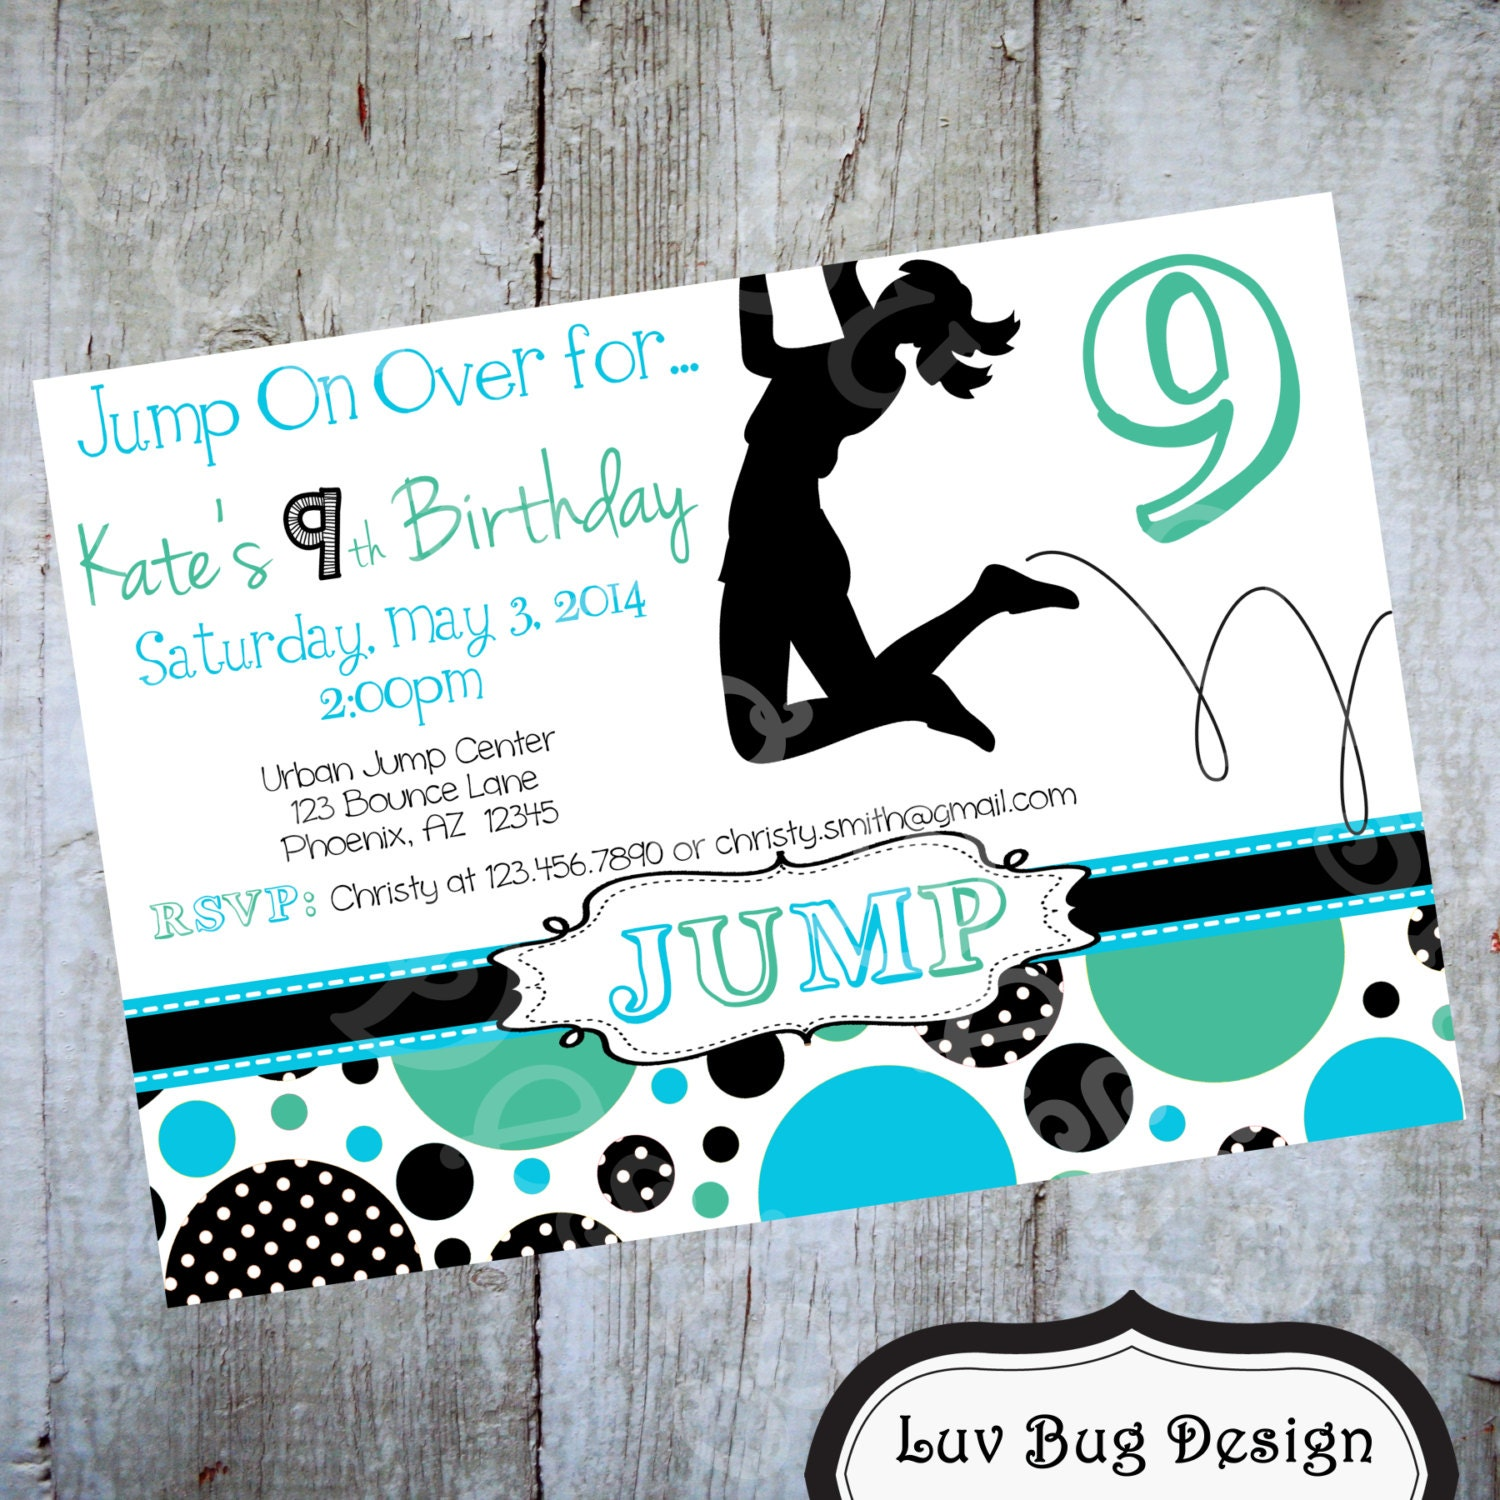 Trampoline Party Invitations: Trampoline Party Invitation Printable Party By Luvbugdesign